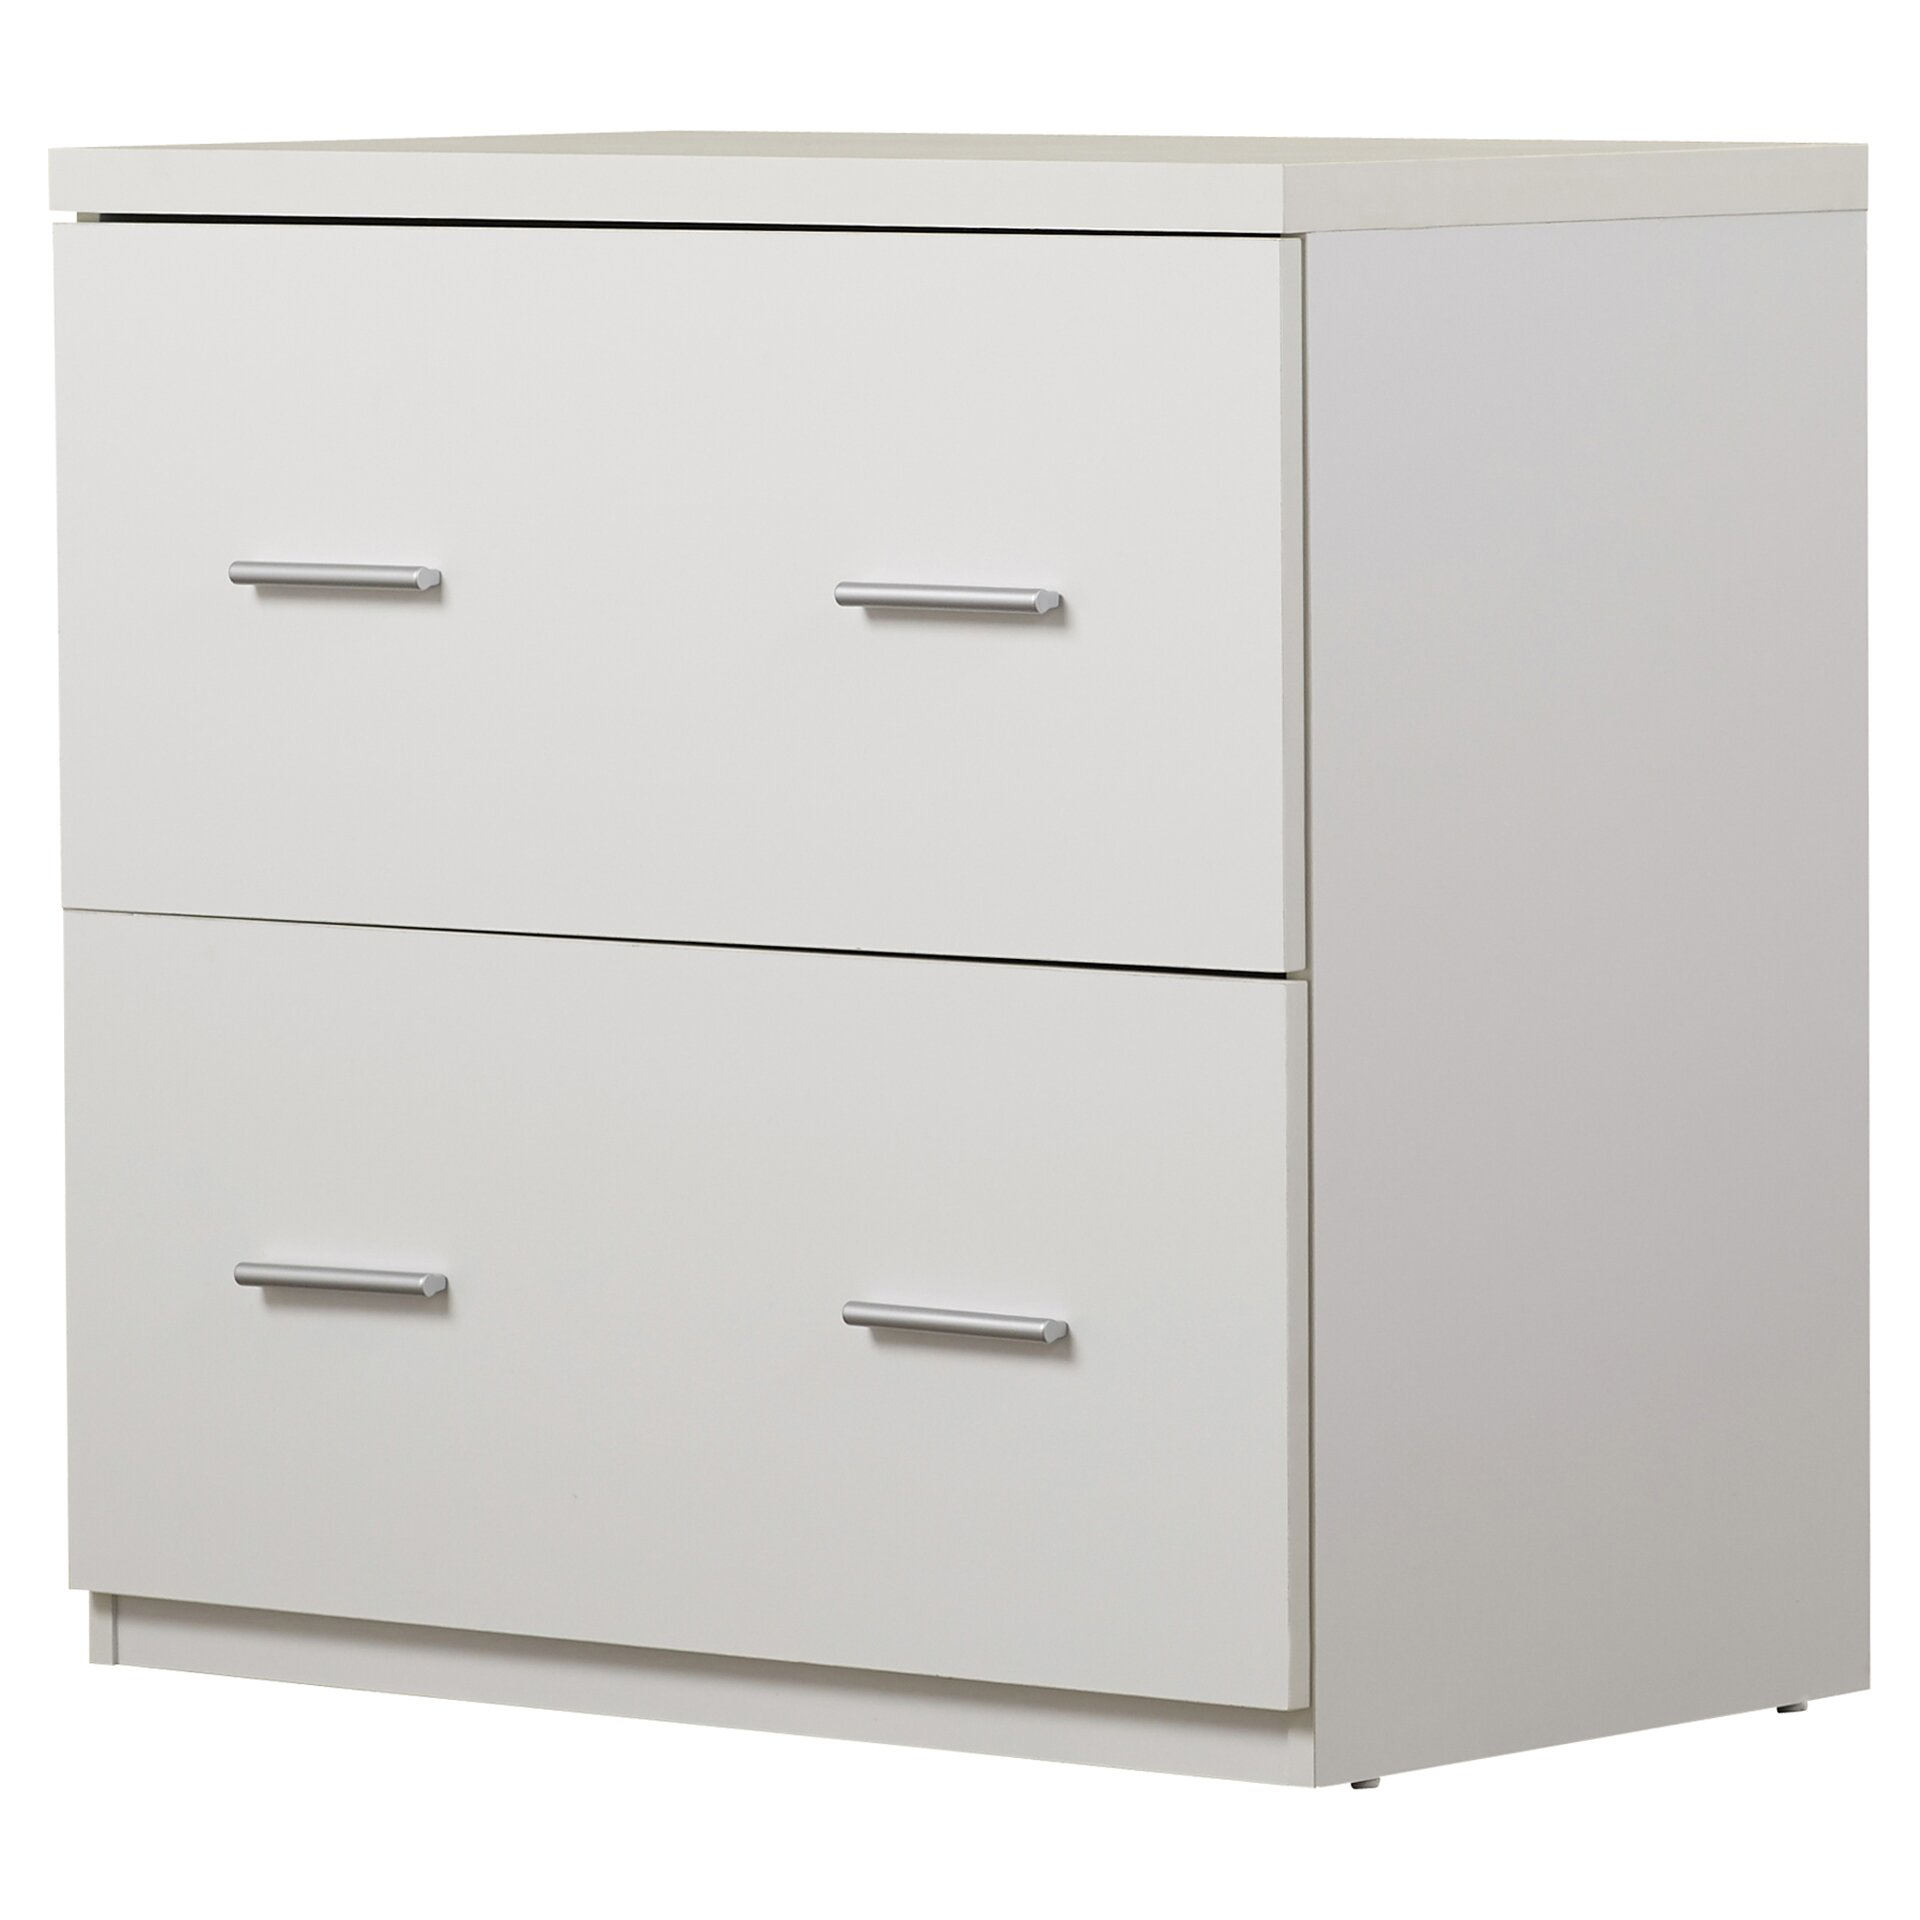 1 Drawer Filing Cabinets You Ll Love Wayfair